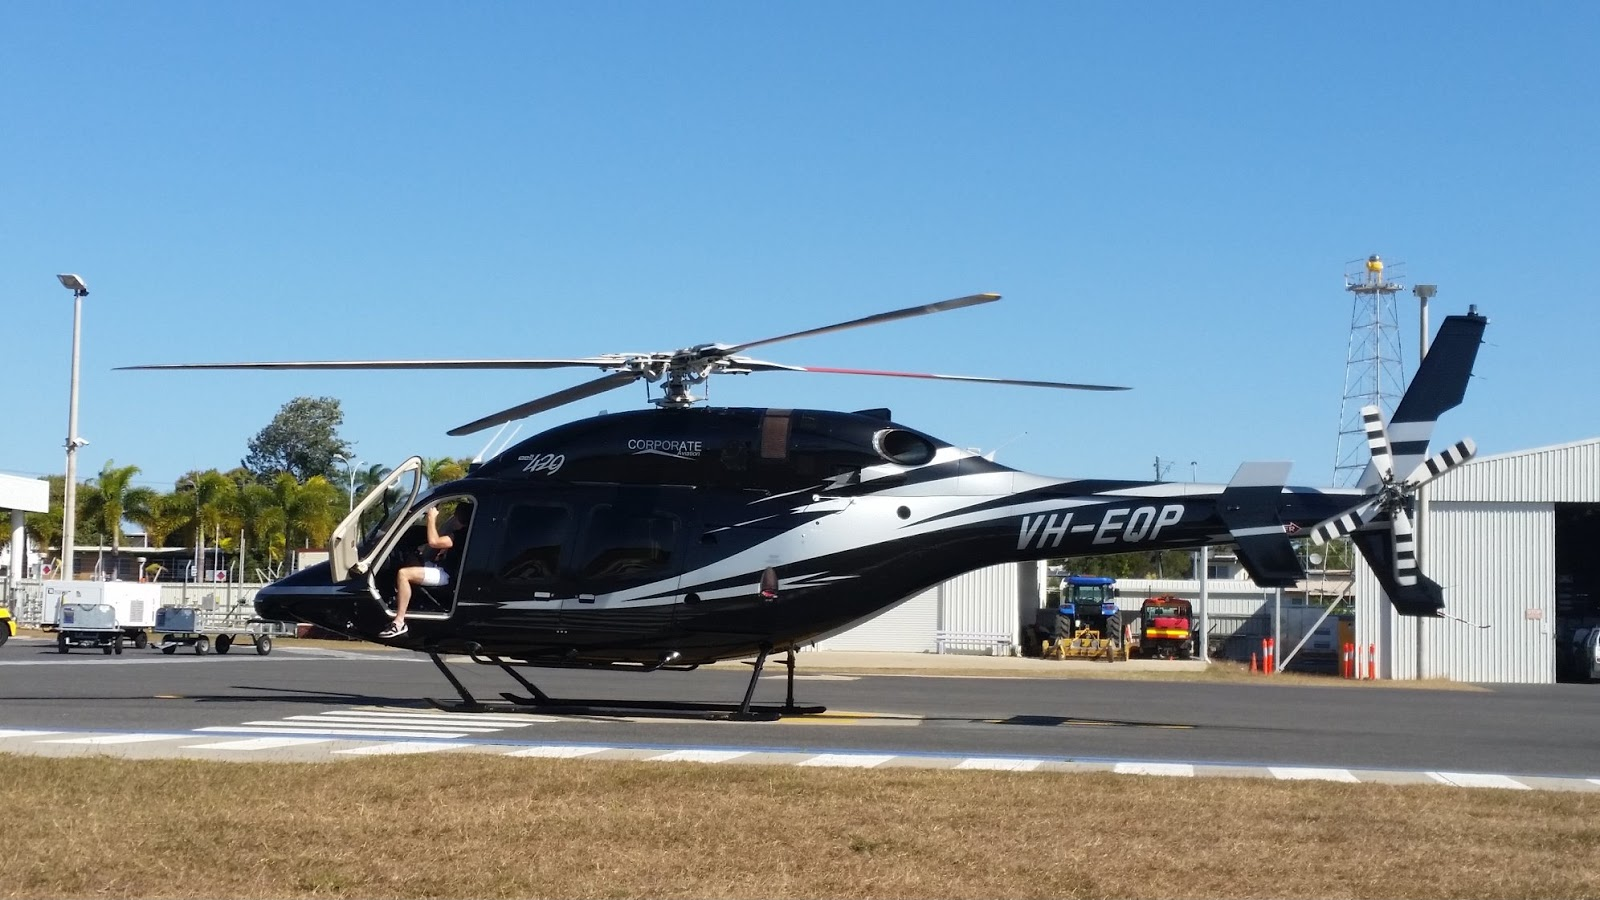 M Bel Airport central queensland plane spotting a of helicopters at gladstone airport corporate